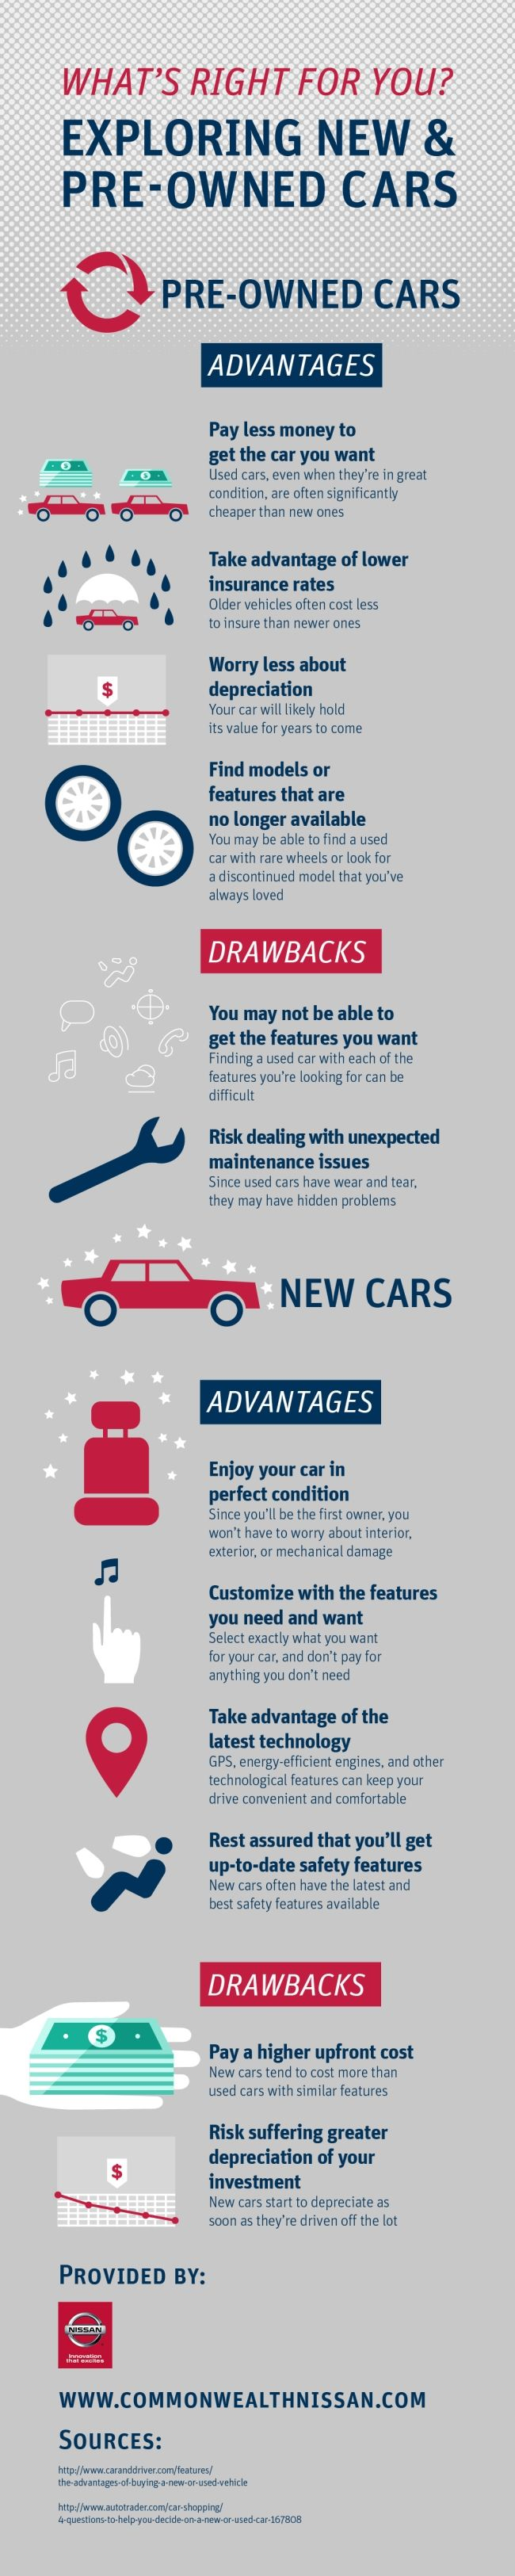 When you choose a preowned car, you pay less to get it and you can take advantage of lower insurance rates! Look over this Nissan dealership infographic to get more tips for buying a car. #infographic #data visualization #Nissan Dealership #Buying a car #Car shopping #Used cars